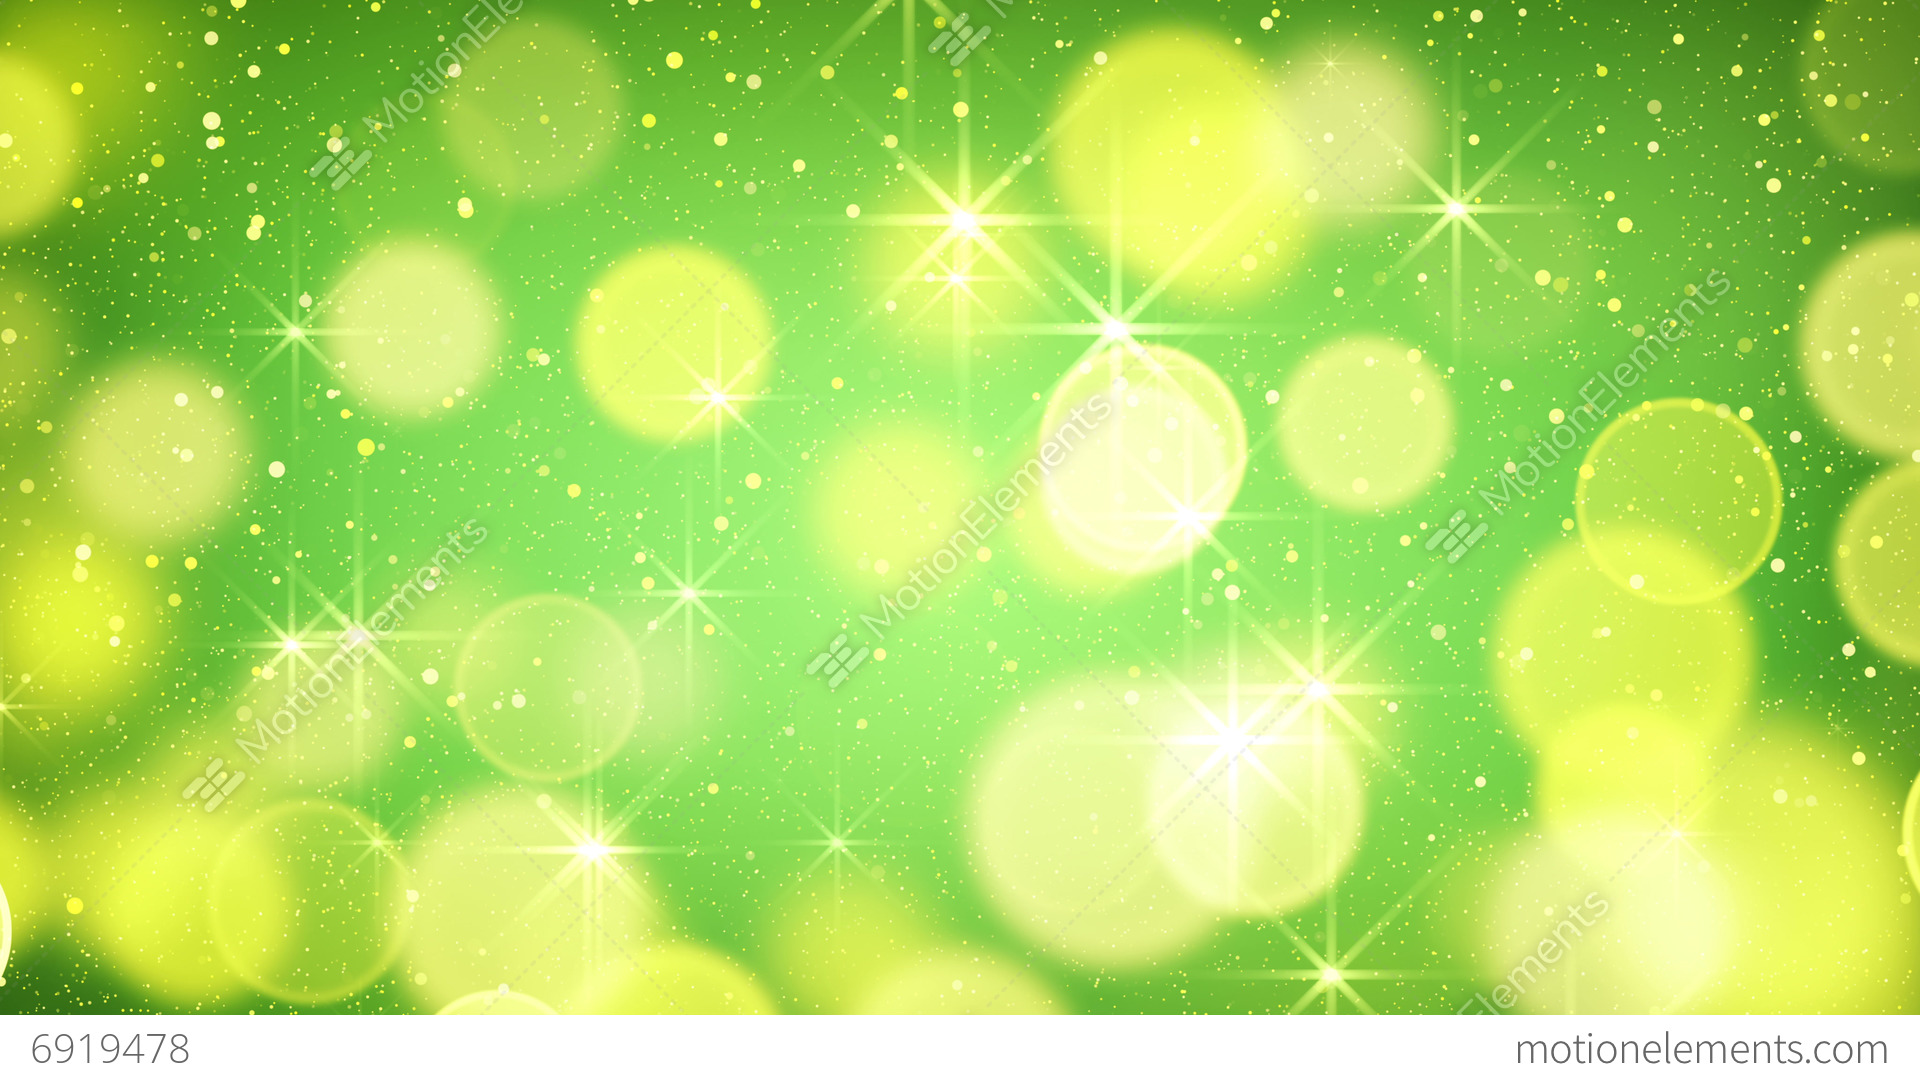 Yellow And Green Wallpapers: Yellow Green Bokeh Light Loopable Background 4k (4096x2304